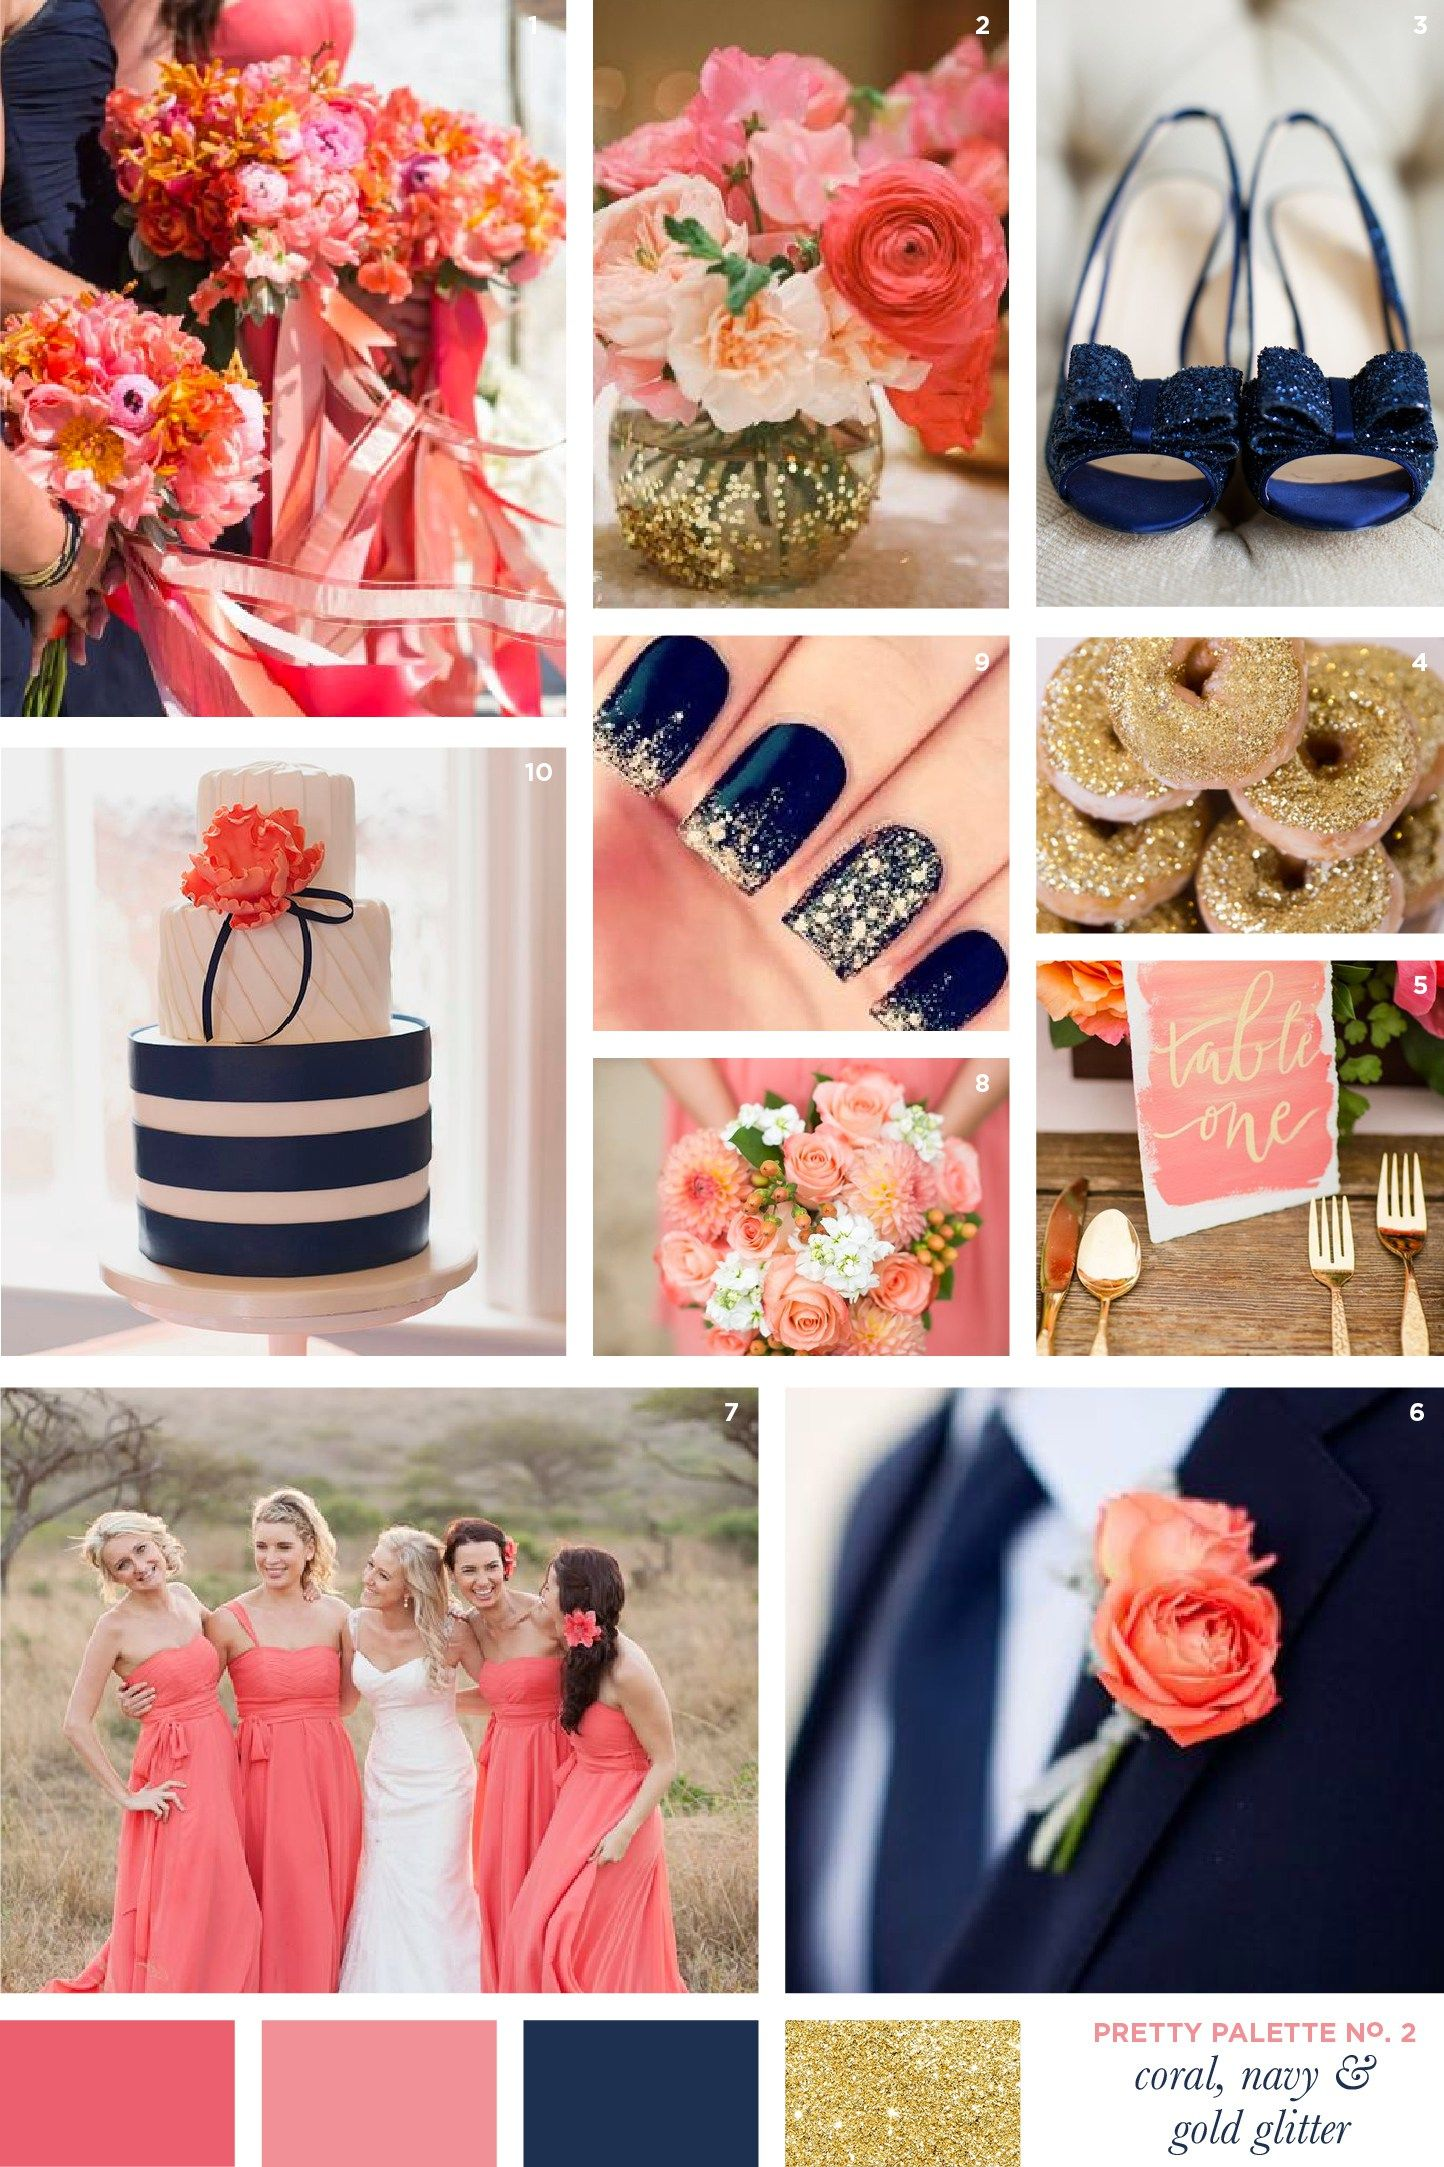 Navy And Coral Wedding.Pretty Palette Coral Navy Gold Glitter I Do 3 Coral Wedding